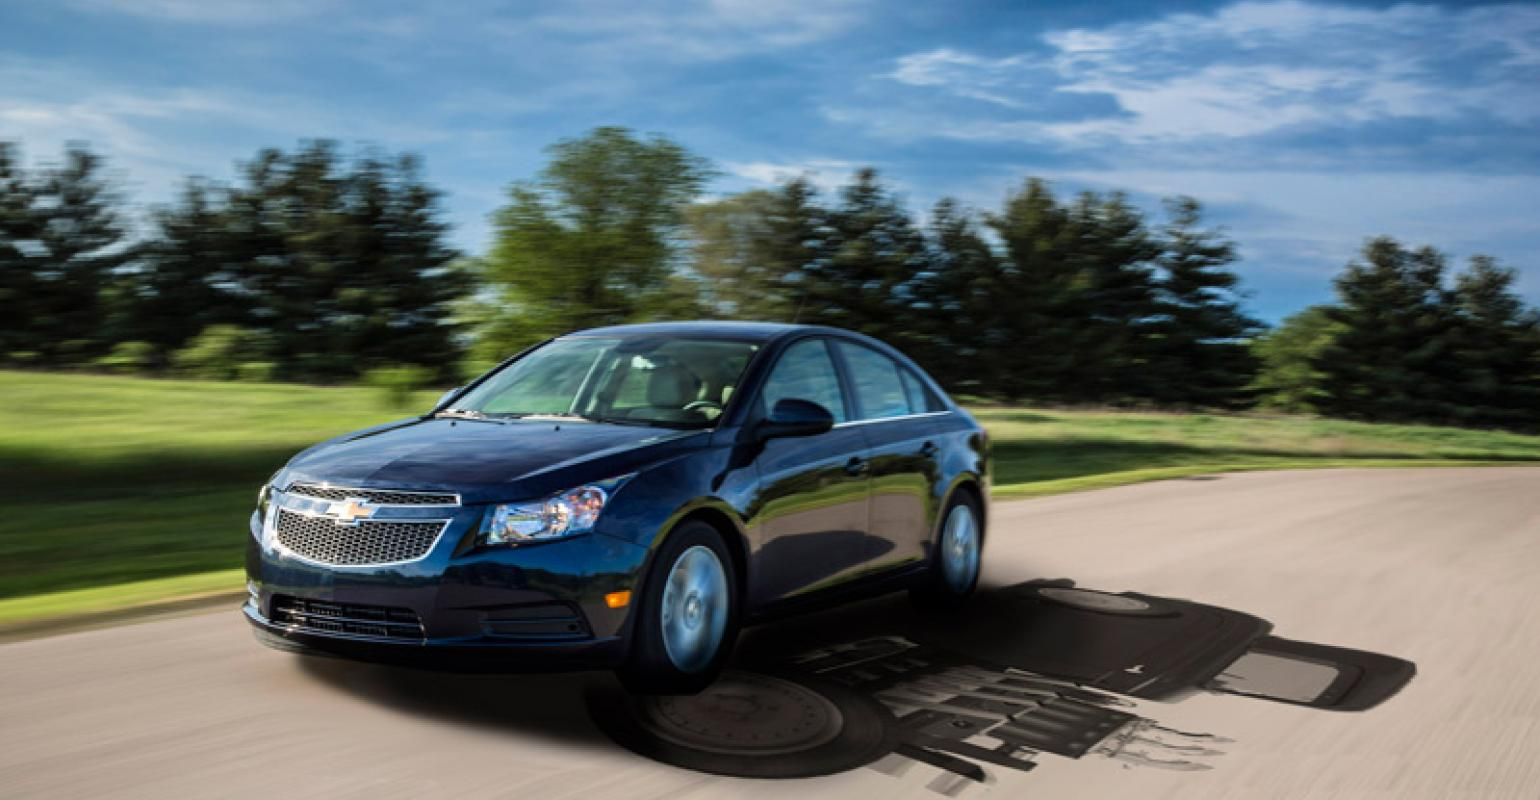 Chevrolet Cruze Owners Manual: Shifting Into Park